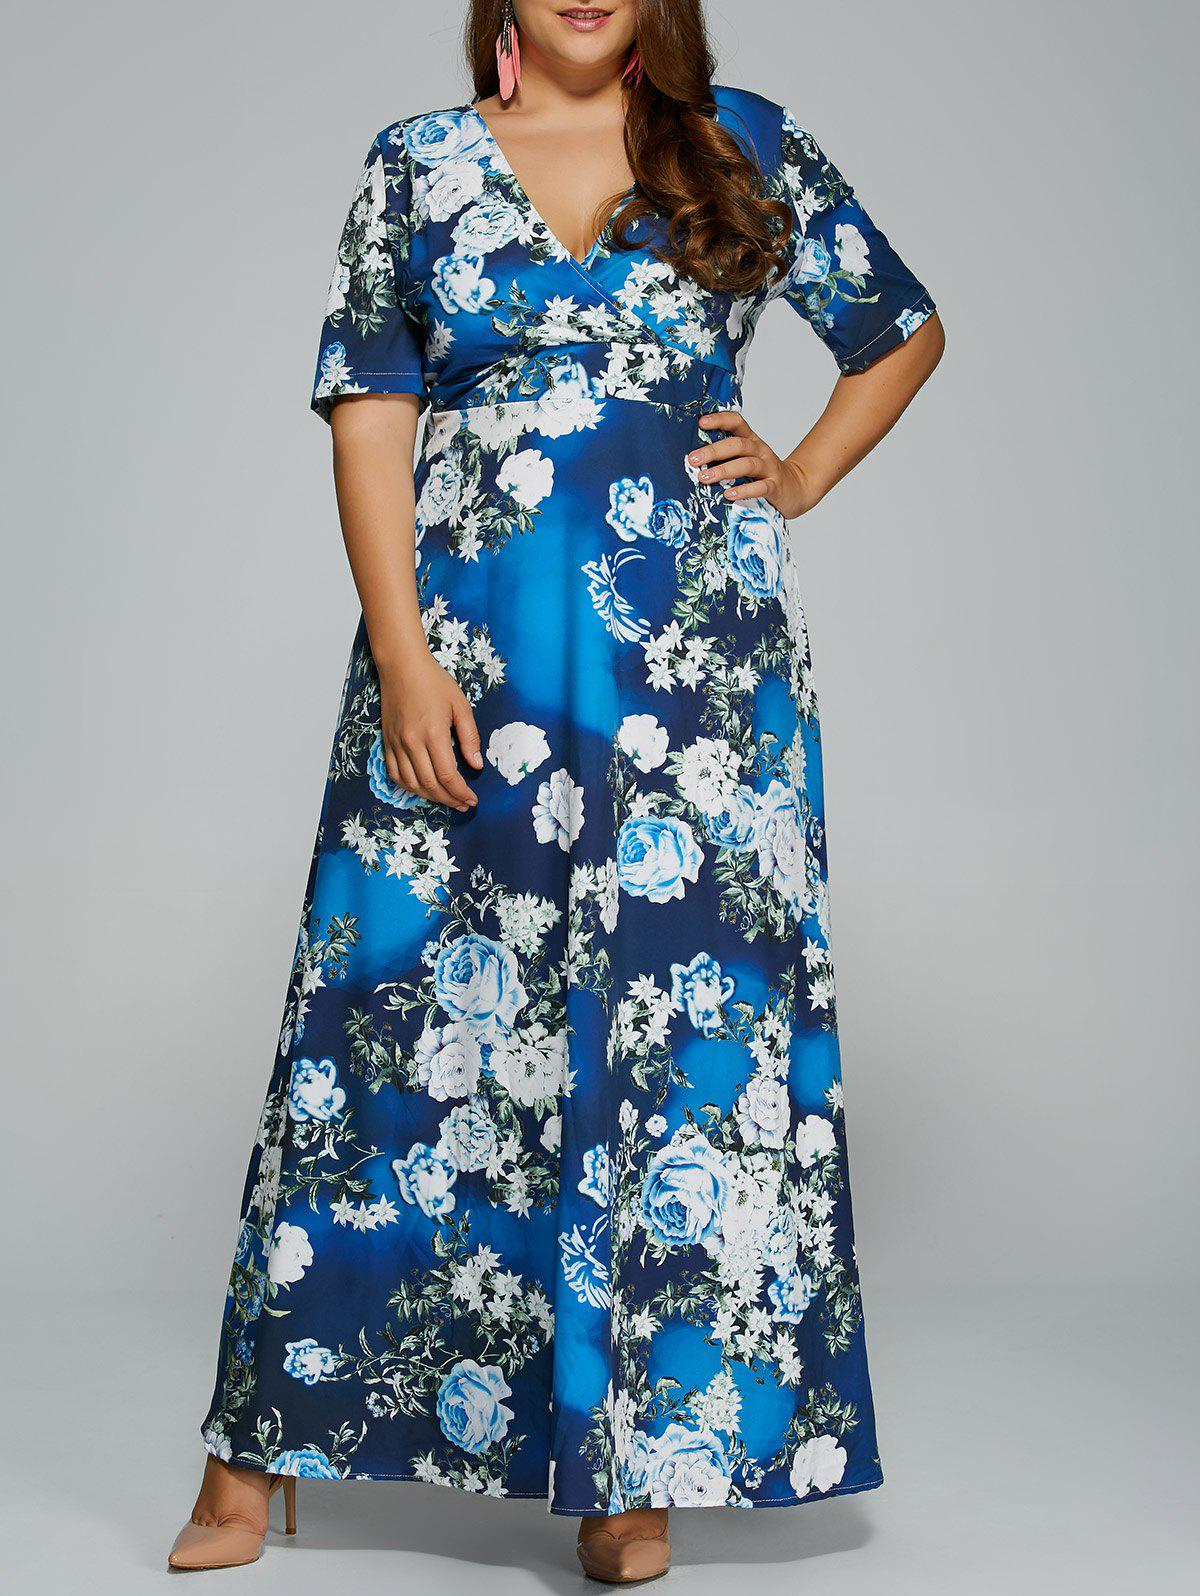 Hawaiian print maxi dress